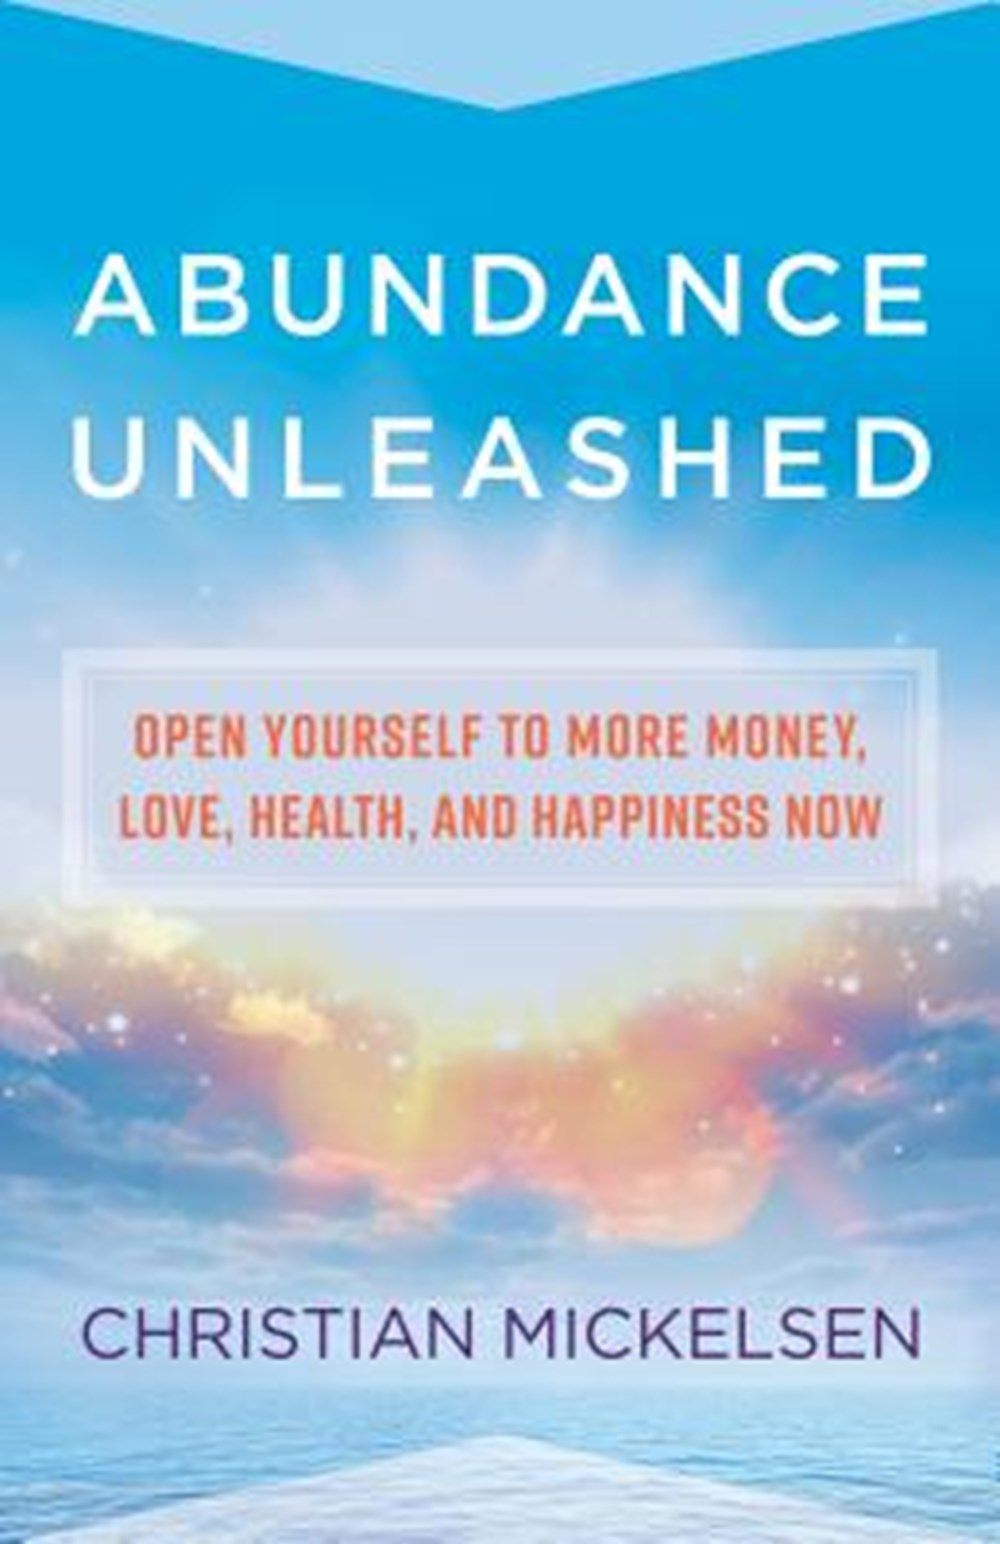 Abundance Unleashed Open Yourself to More Money, Love, Health, and Happiness Now